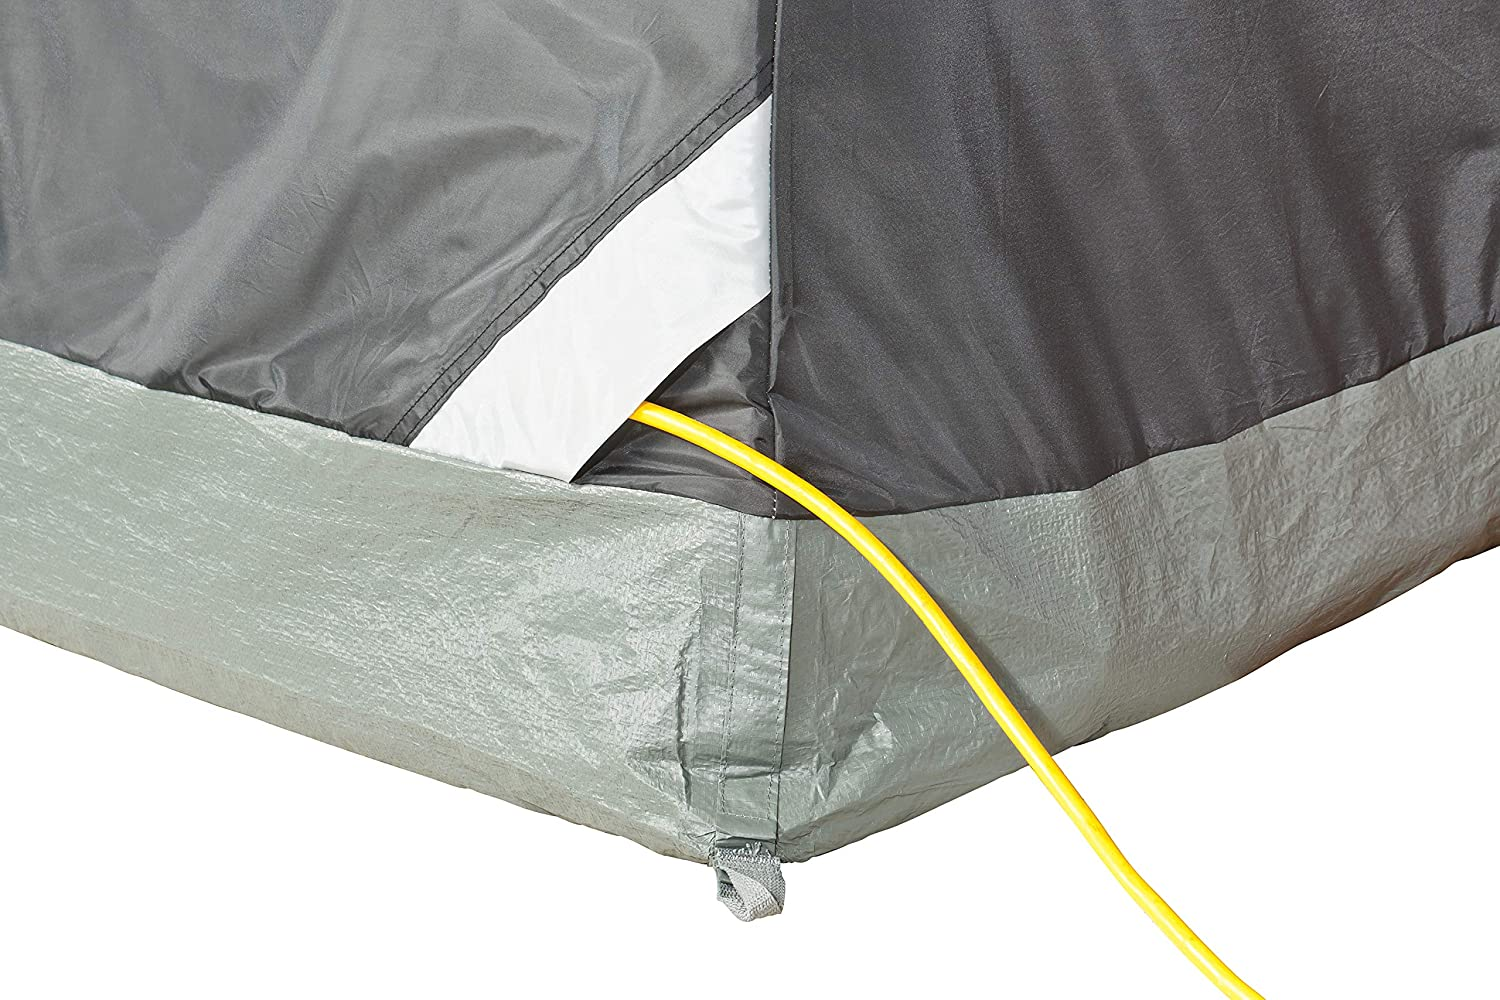 2000014338 Coleman 2-For-1 All Day 4-Person Shelter /& Tent The Coleman Company Inc